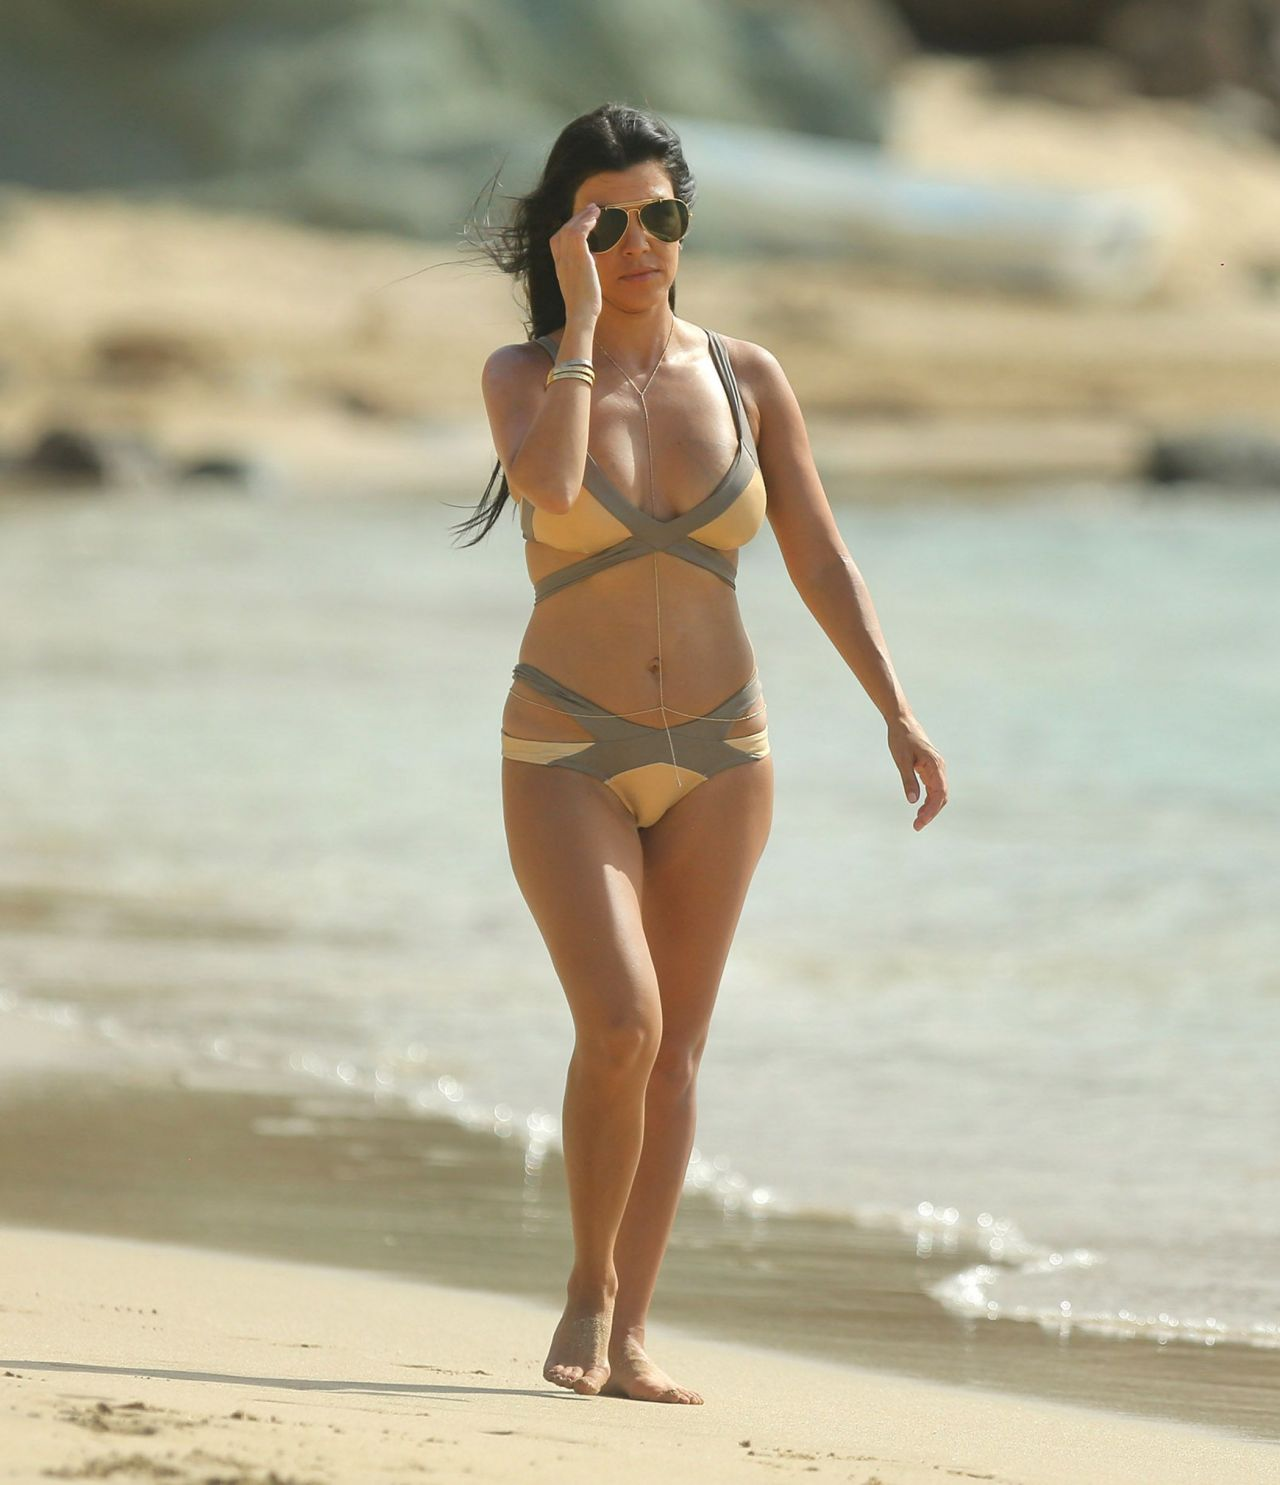 kourtney-kardashian-bikini-pics-on-vacation-at-the-beach-in-st.-barts-august-2015_3